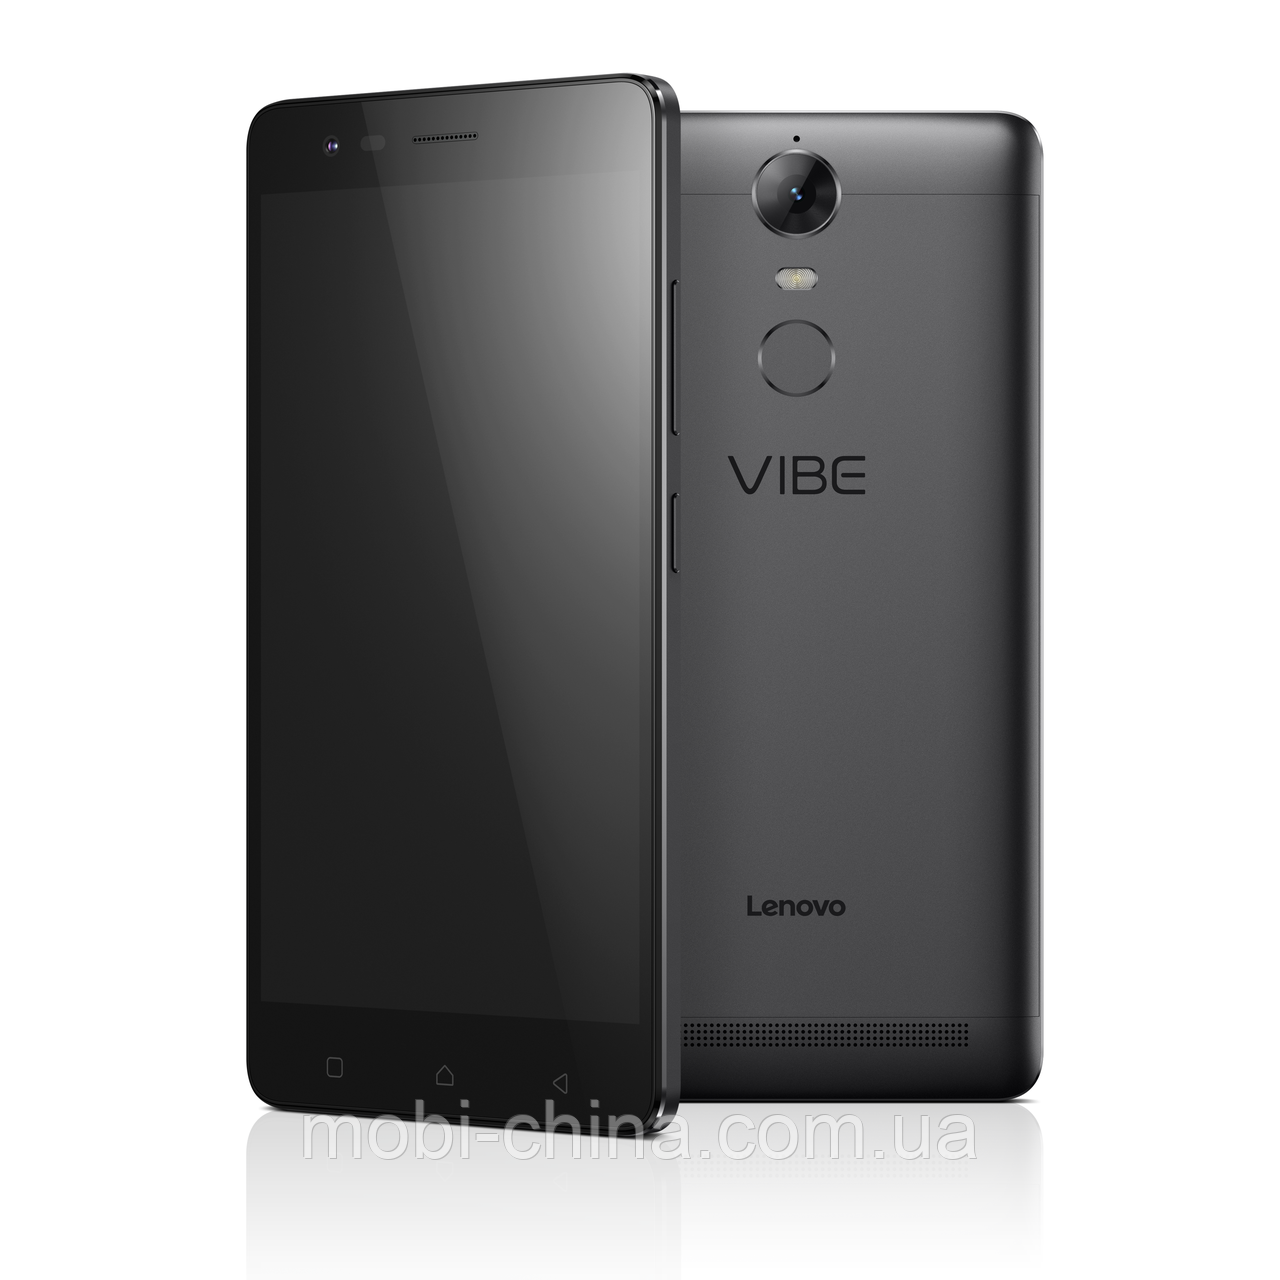 Смартфон Lenovo VIBE K5 Note PRO 32GB  A7020a48  Grey